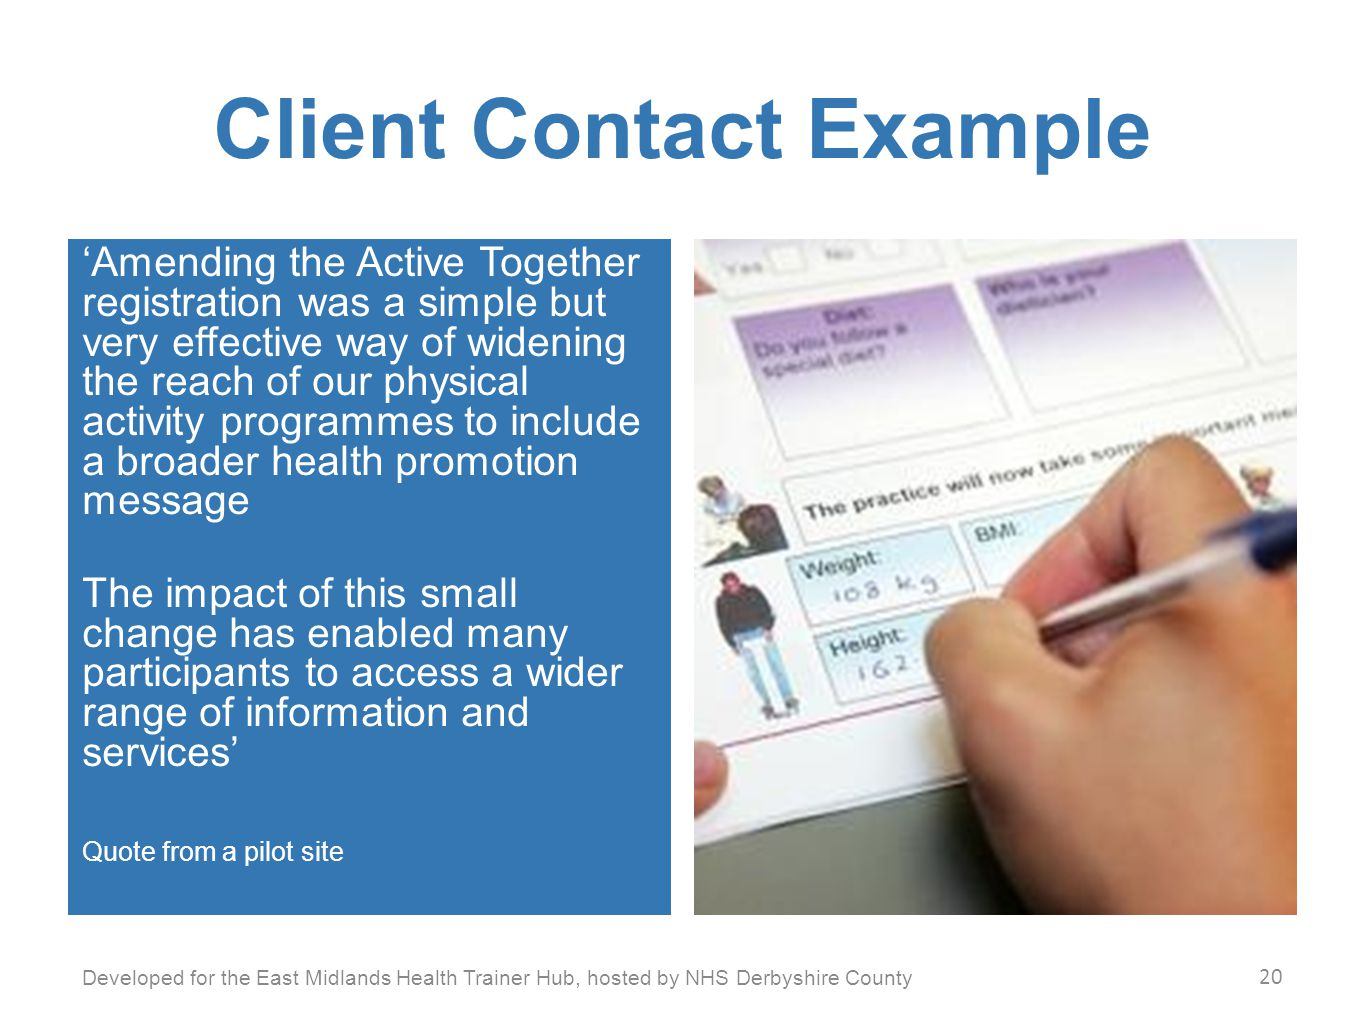 Client Contact Example 'Amending the Active Together registration was a simple but very effective way of widening the reach of our physical activity programmes to include a broader health promotion message The impact of this small change has enabled many participants to access a wider range of information and services' Quote from a pilot site Developed for the East Midlands Health Trainer Hub, hosted by NHS Derbyshire County 20